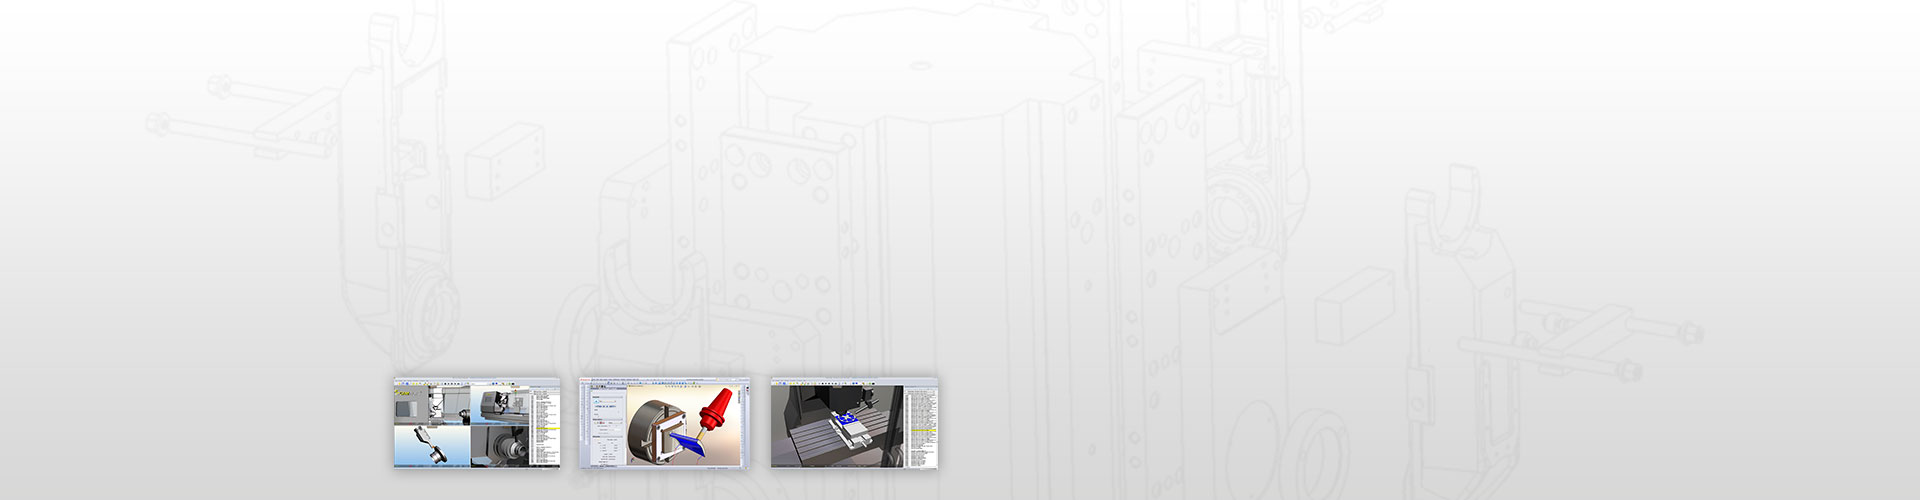 SOLIDWORKS-Seamless-Integration-Banner-BG